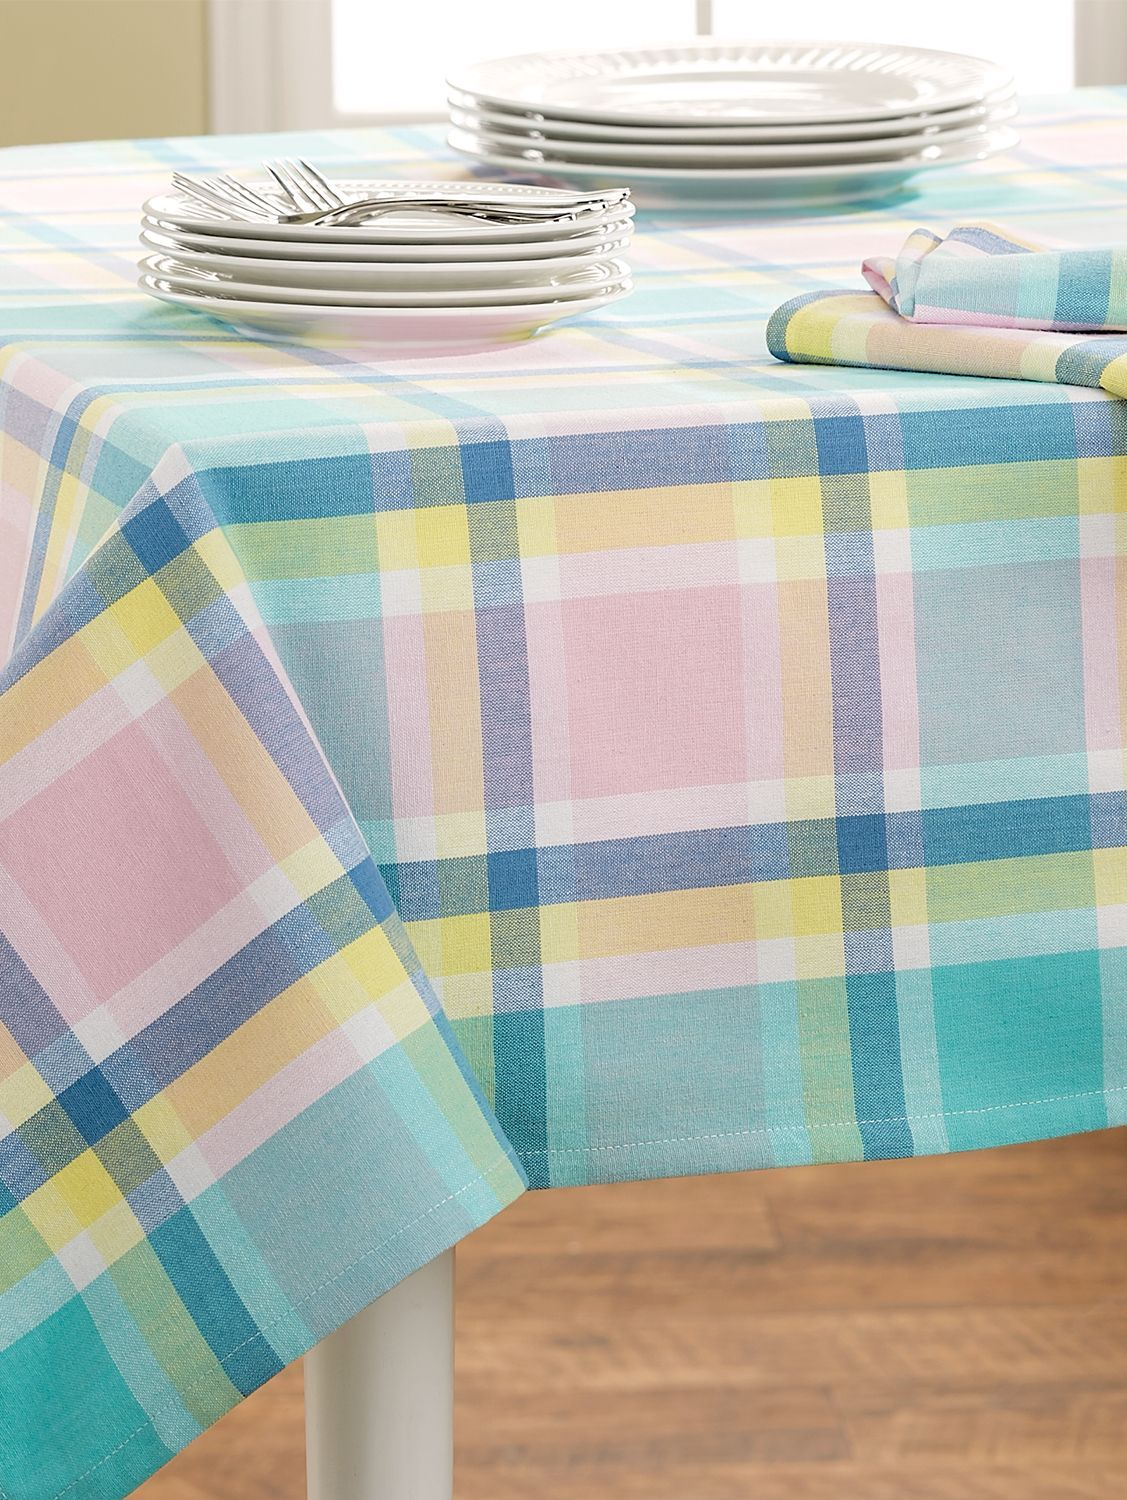 Pastel Plaid Cotton Tablecloth Plaid Tablecloth Table Cloth Cotton Tablecloths